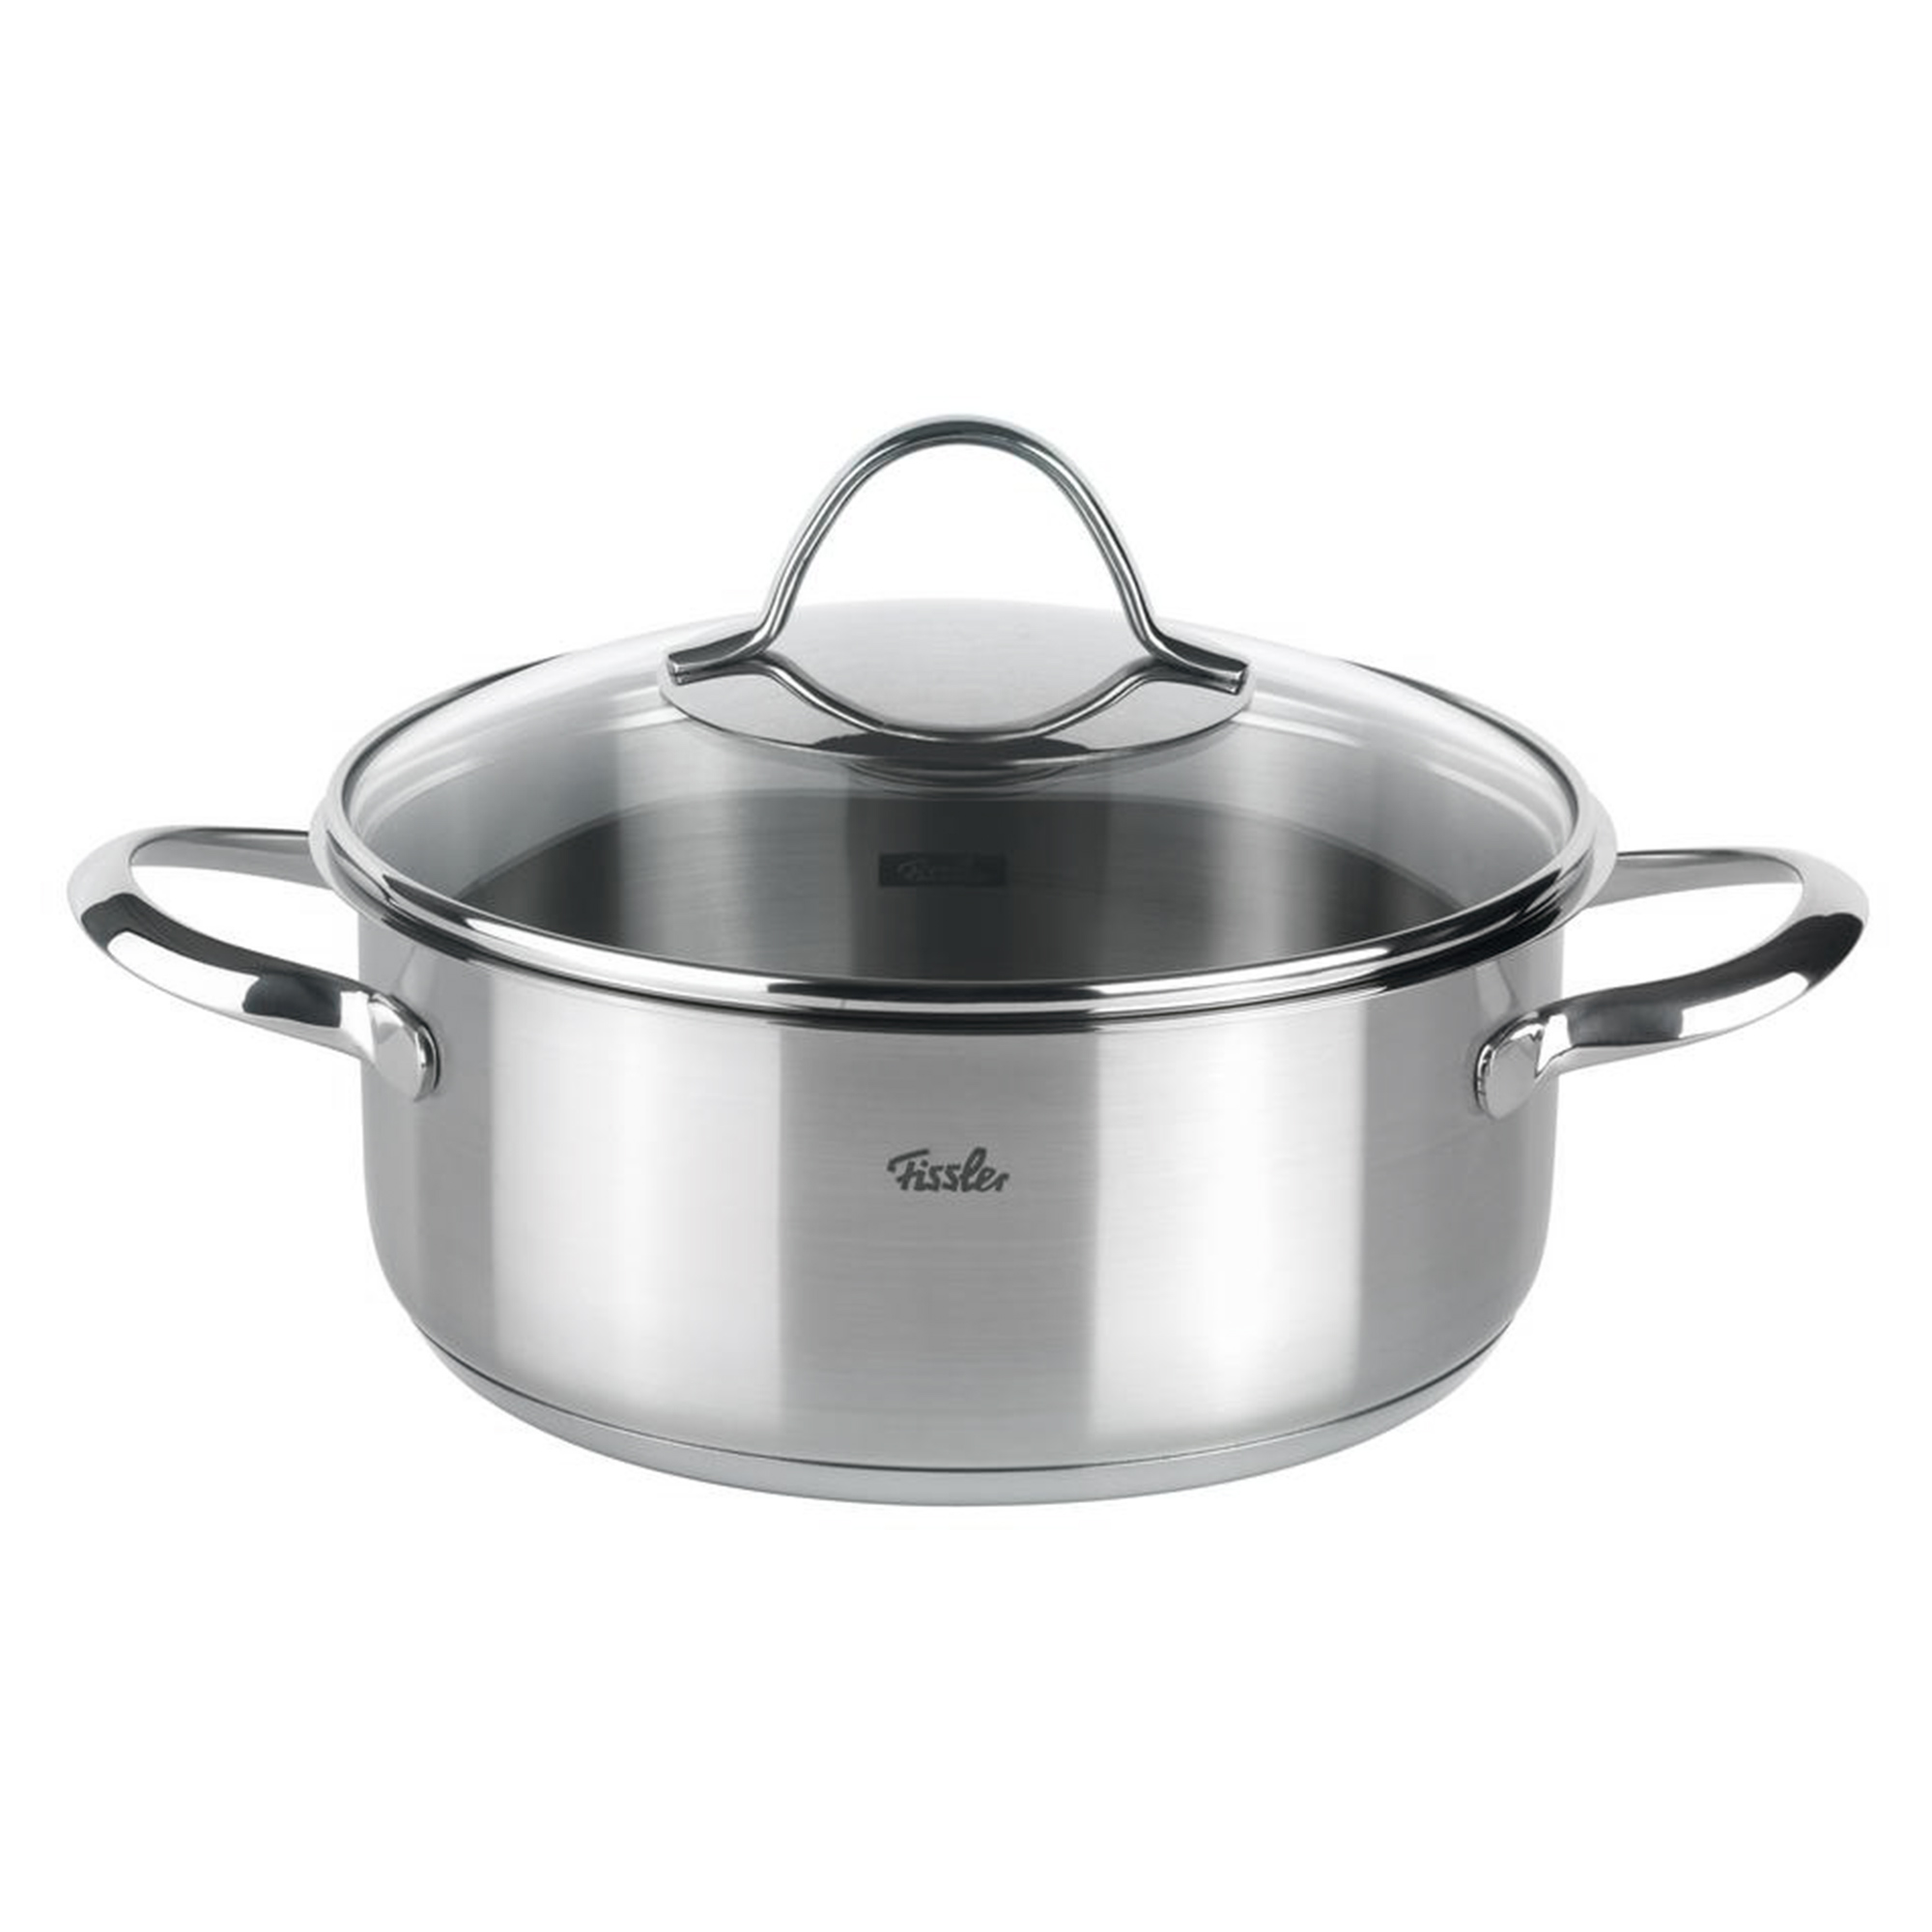 Купить Кастрюля Fissler Paris 20 см см 2, 4 л, Серебристый